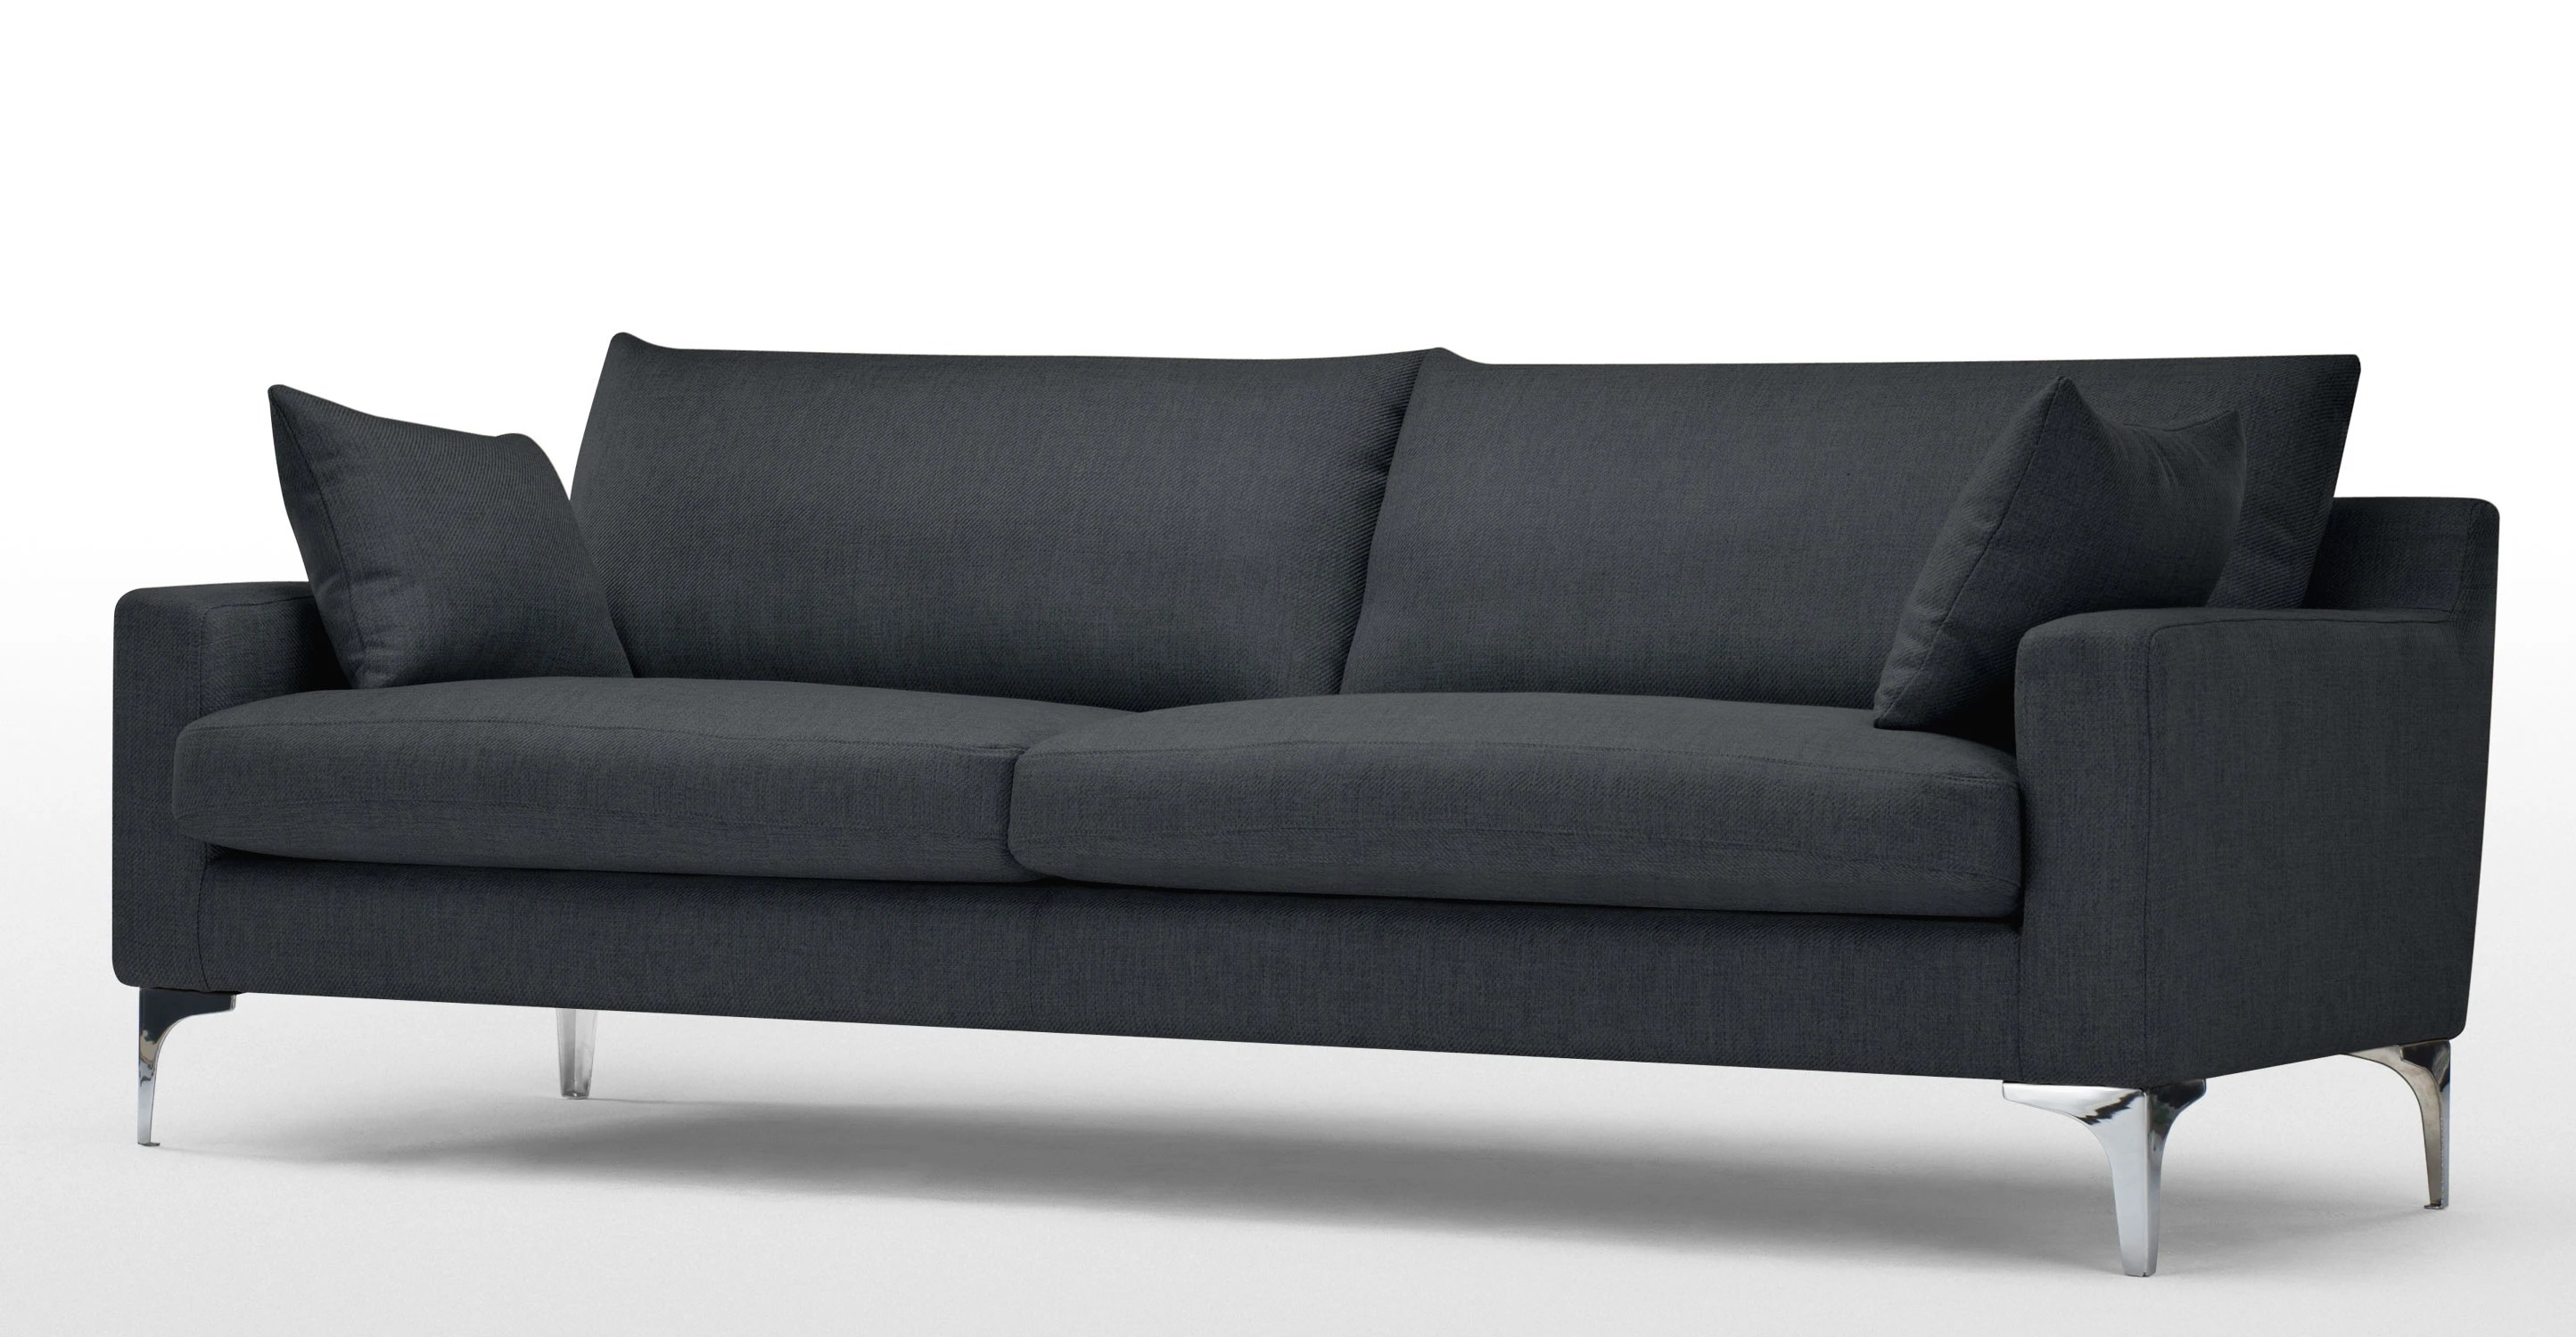 best sofas on the high street modern sectional houston tx mendini 3 seater sofa in anthracite grey made